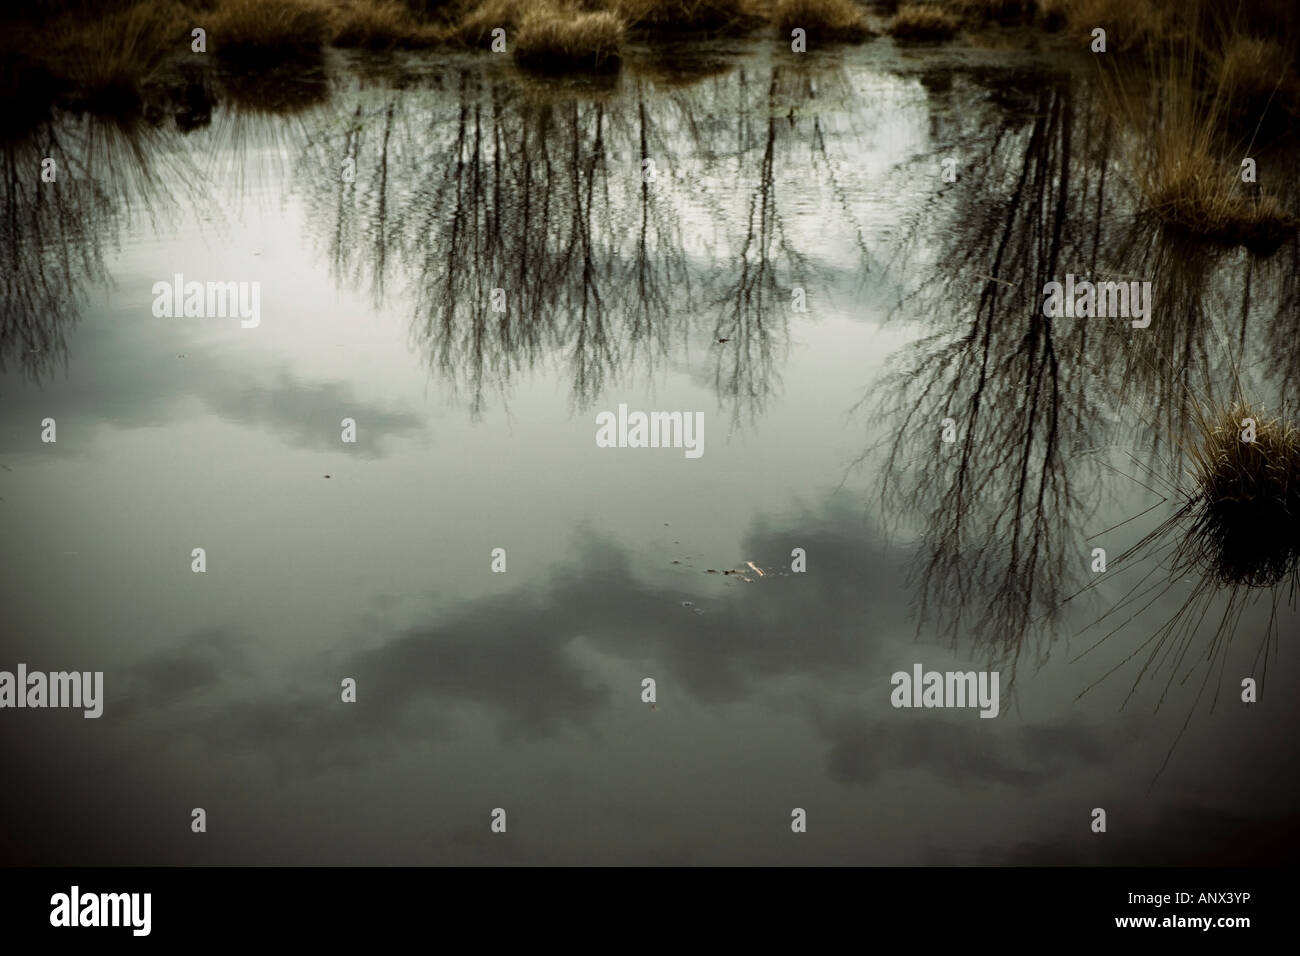 Refections on a wildlife pond in England Stock Photo